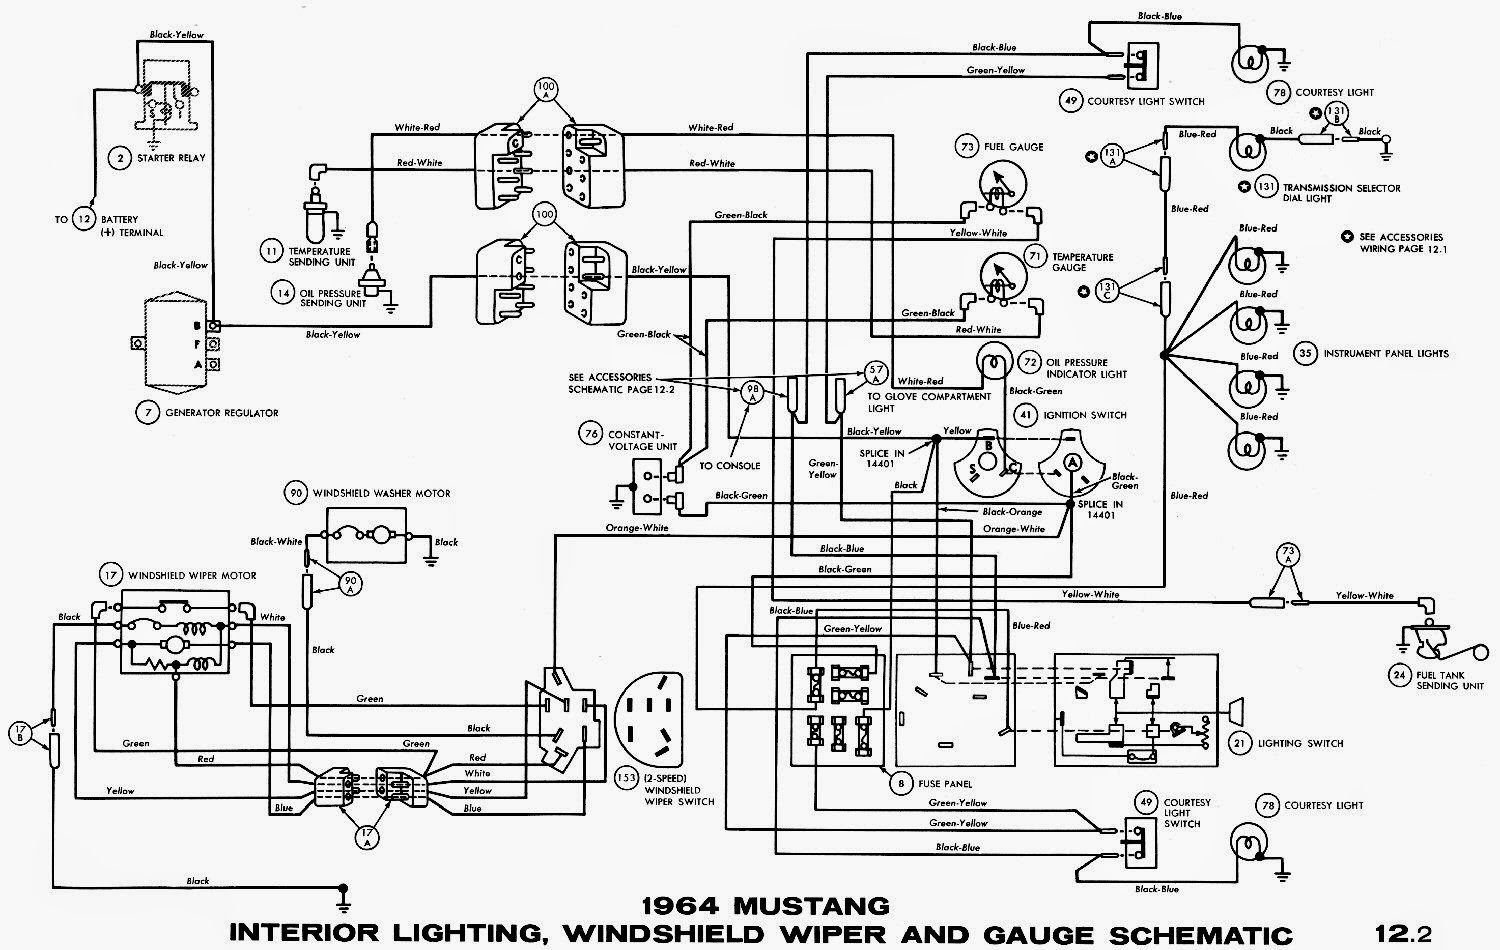 1964%2BMustang%2BWiring%2BDiagrams 1964 mustang wiring diagrams schematic wiring diagrams 1989 mustang wiring diagram at mifinder.co